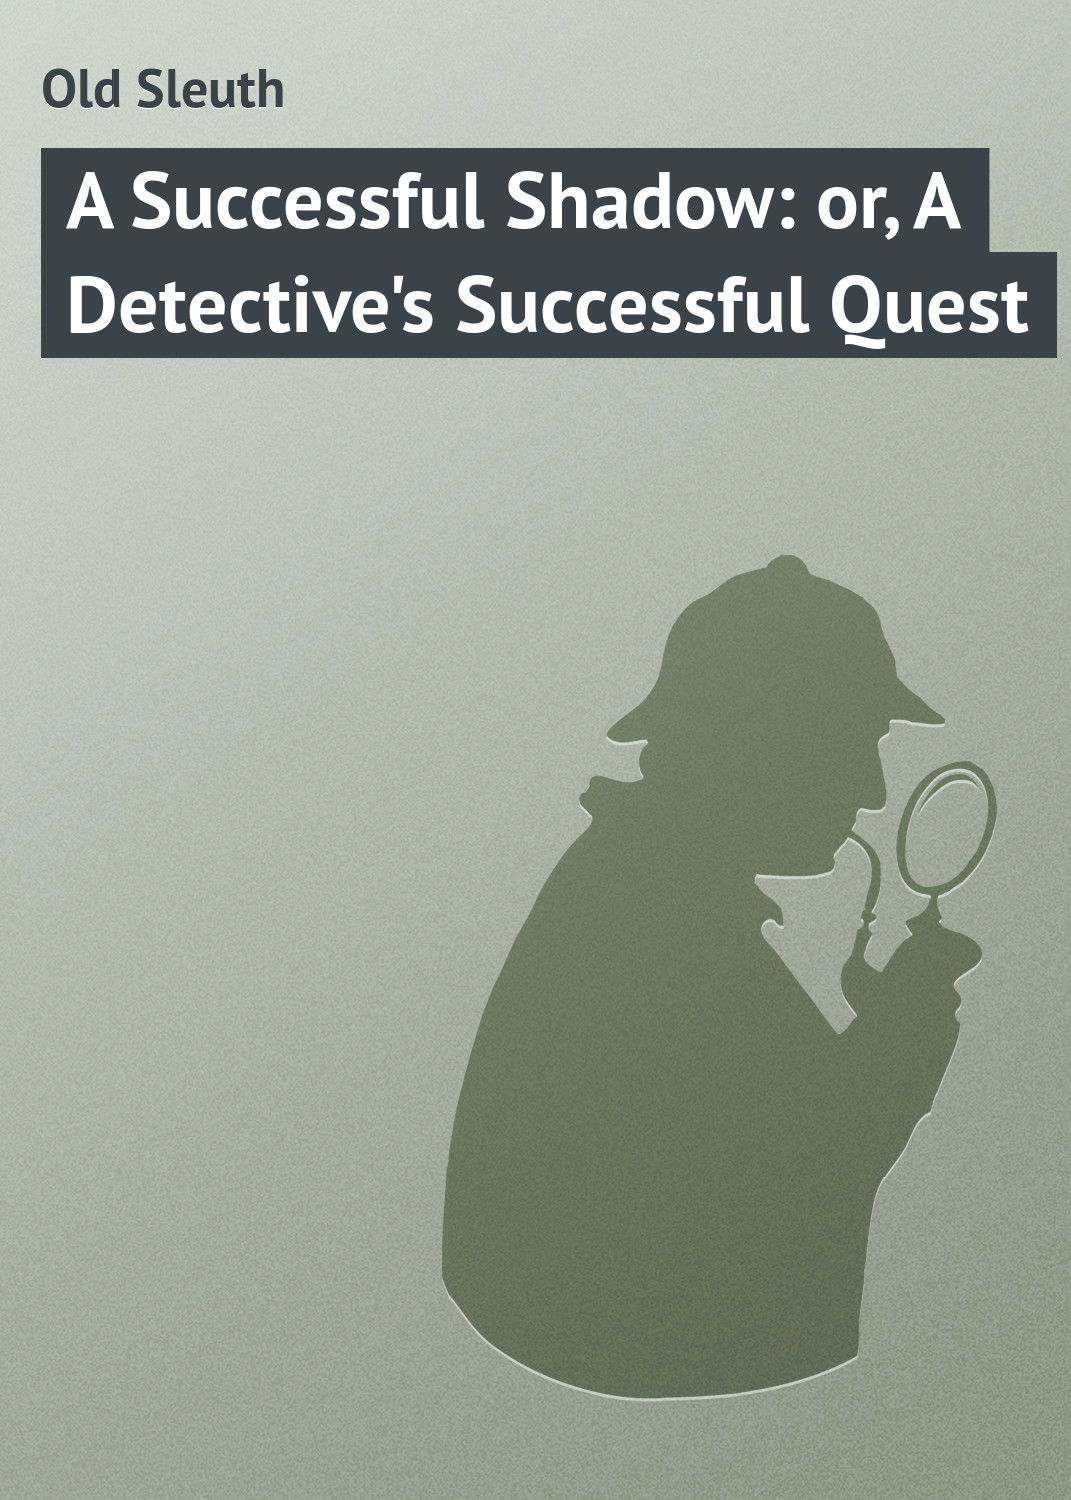 Old Sleuth A Successful Shadow: or, A Detective's Successful Quest